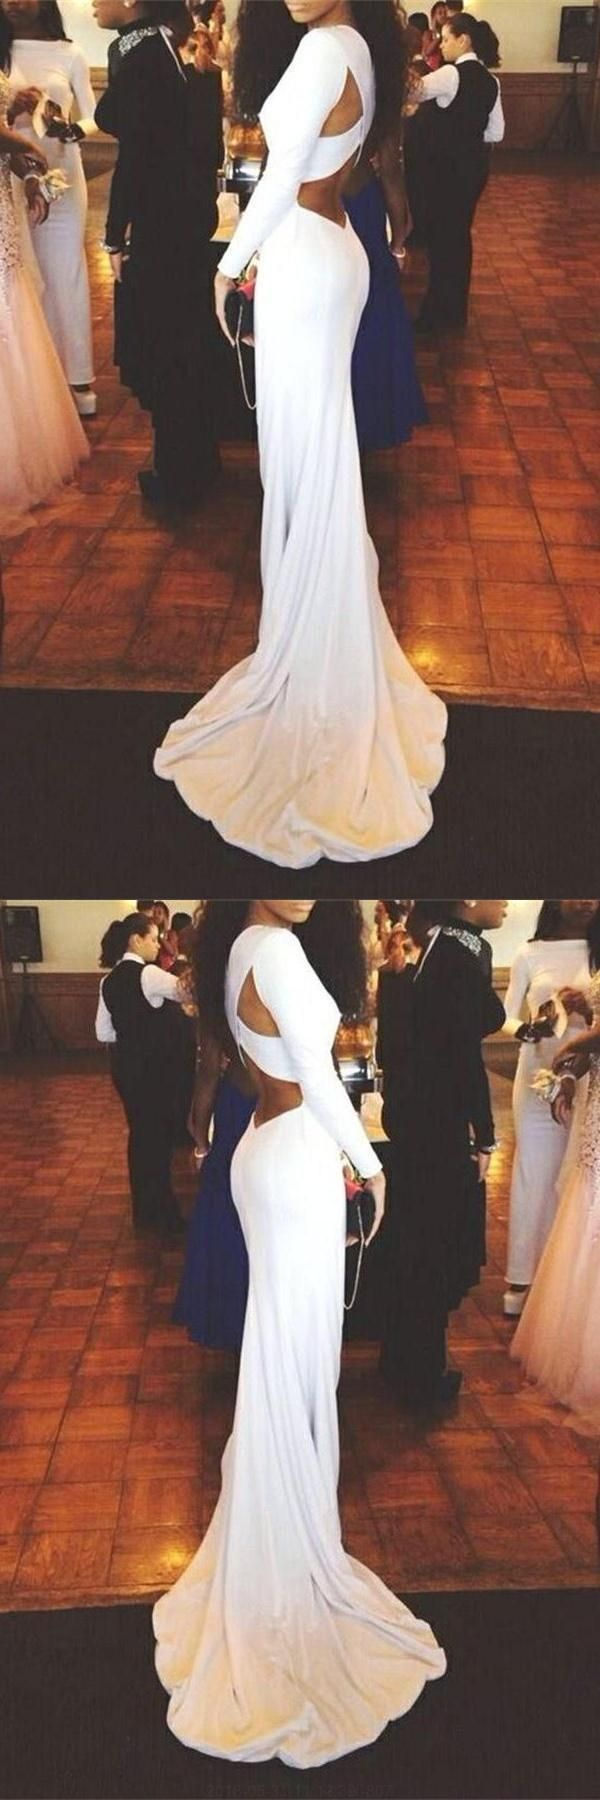 Prom dresses white open back prom dresses long sleeves prom